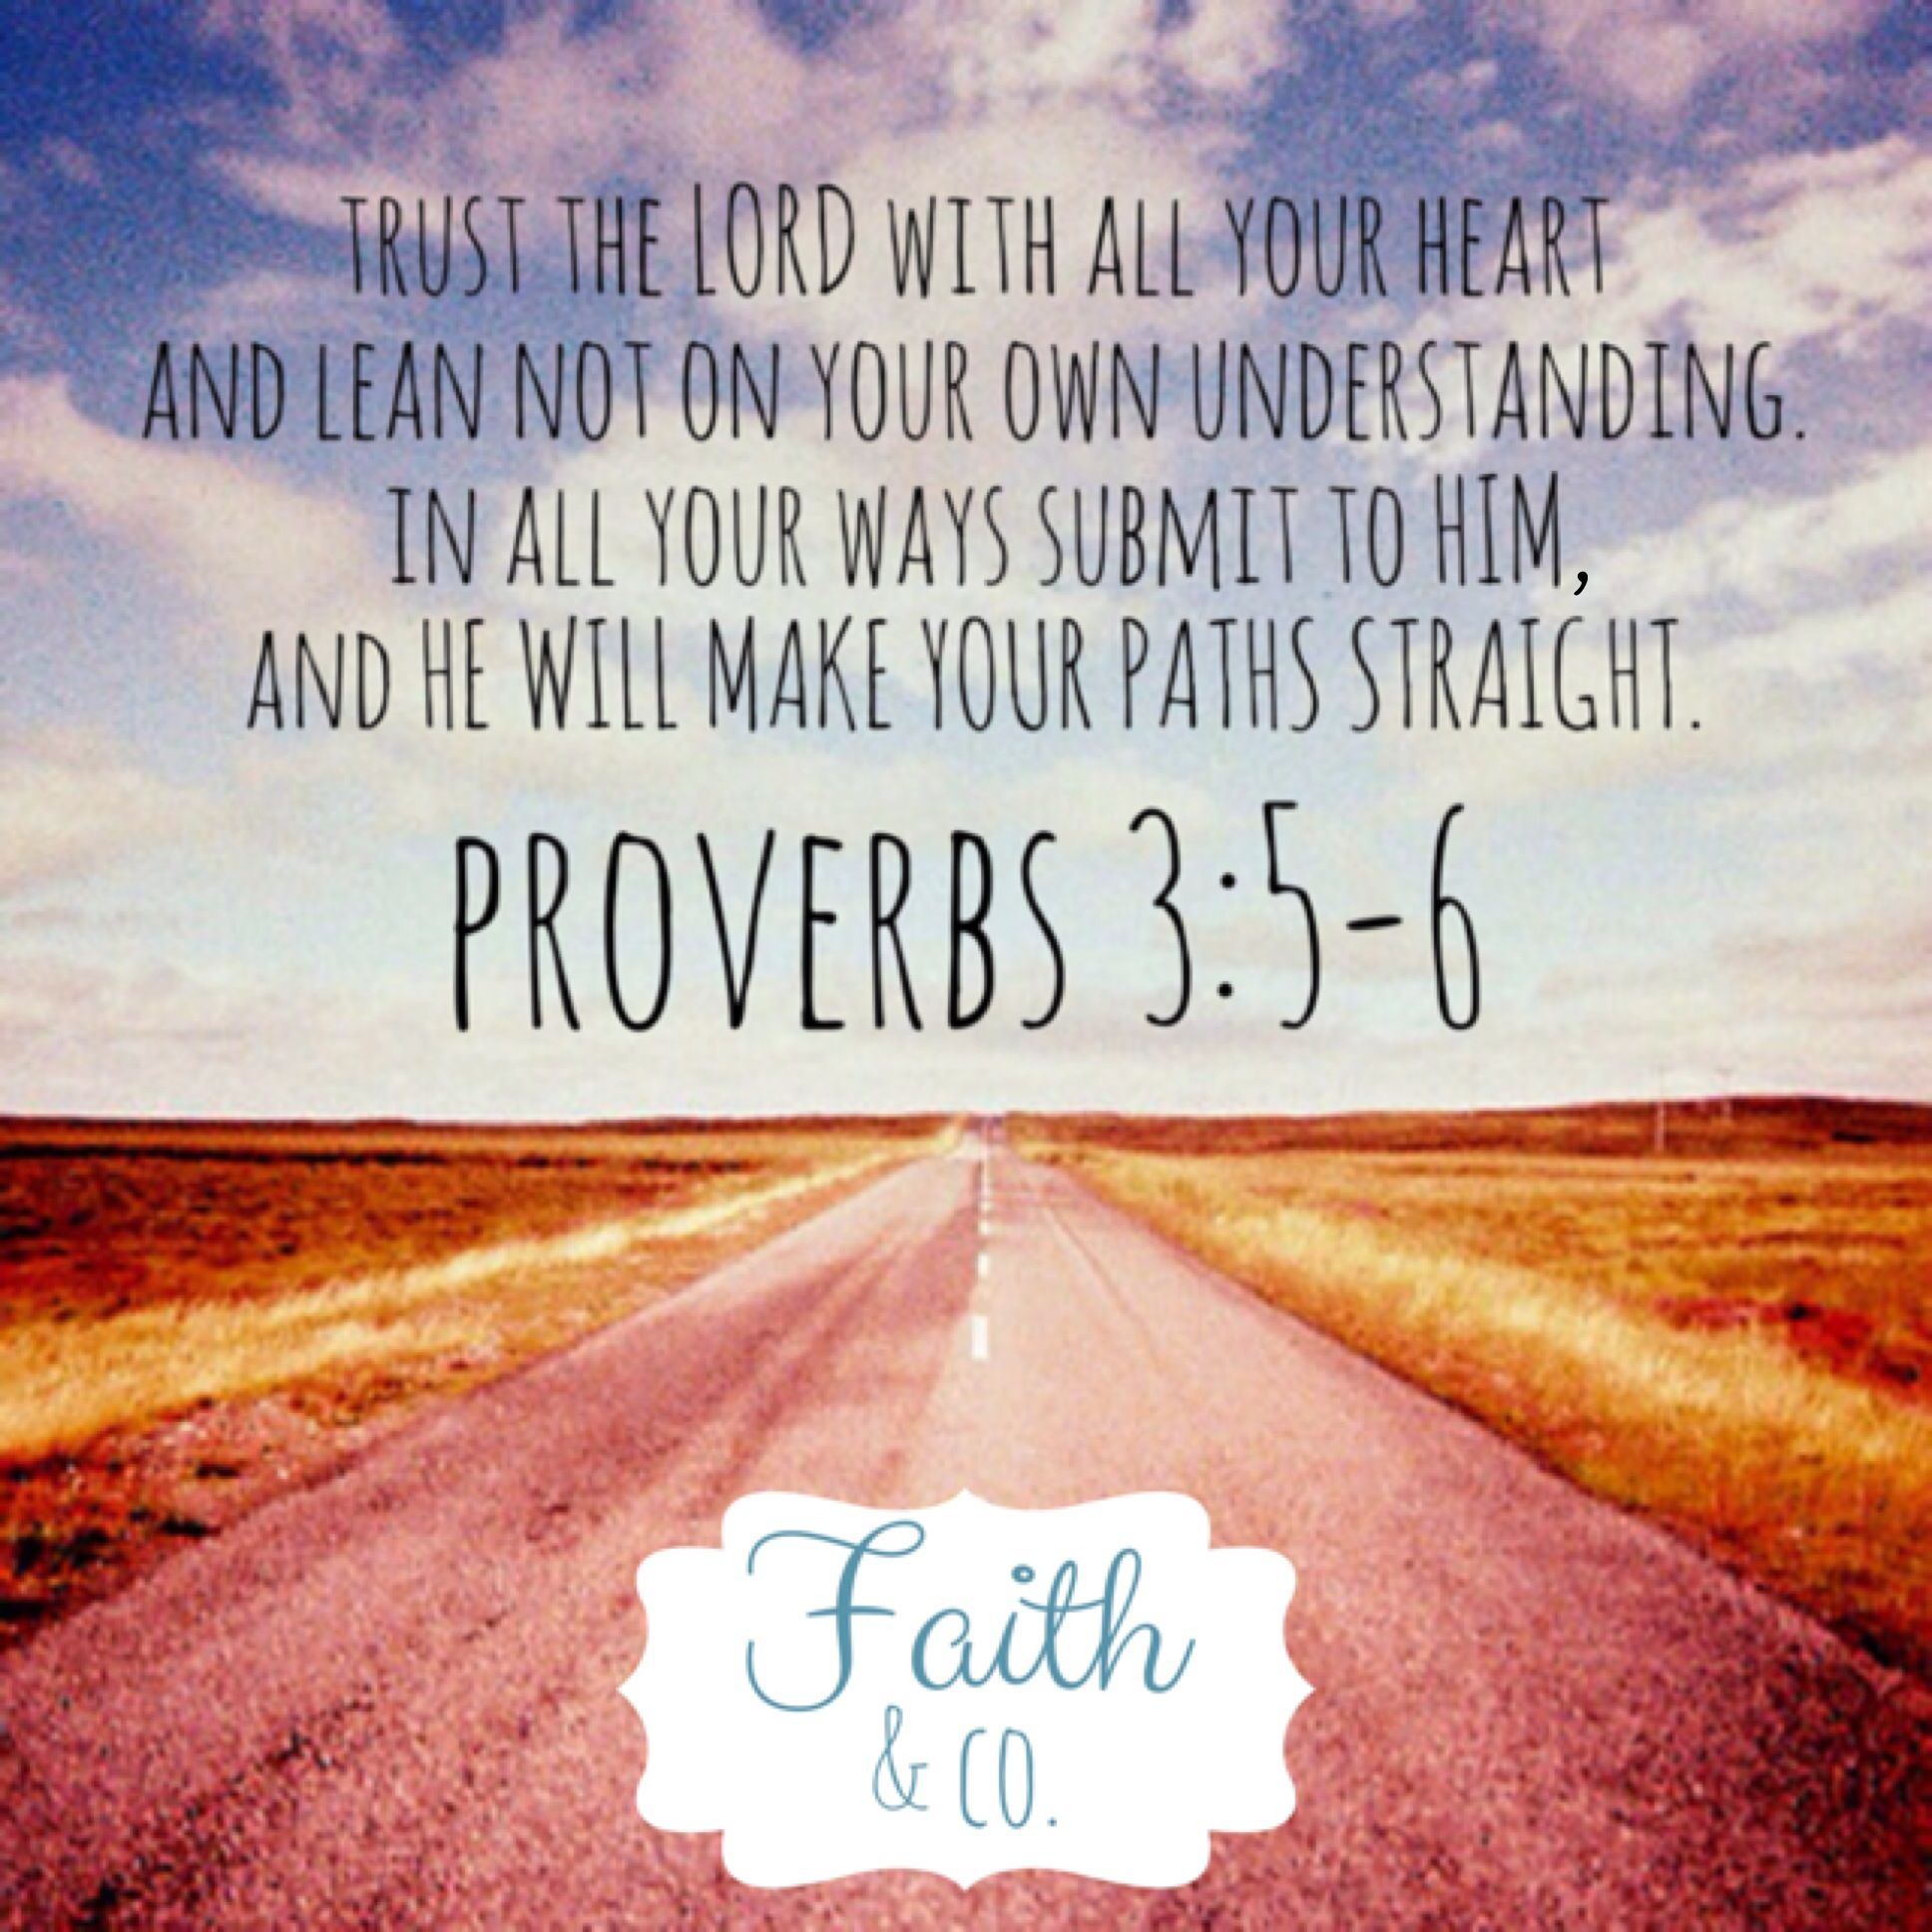 Bible Quotes About Faith Brilliant Images For  Bible Verses About Strength And Faith In Hard Times . Inspiration Design